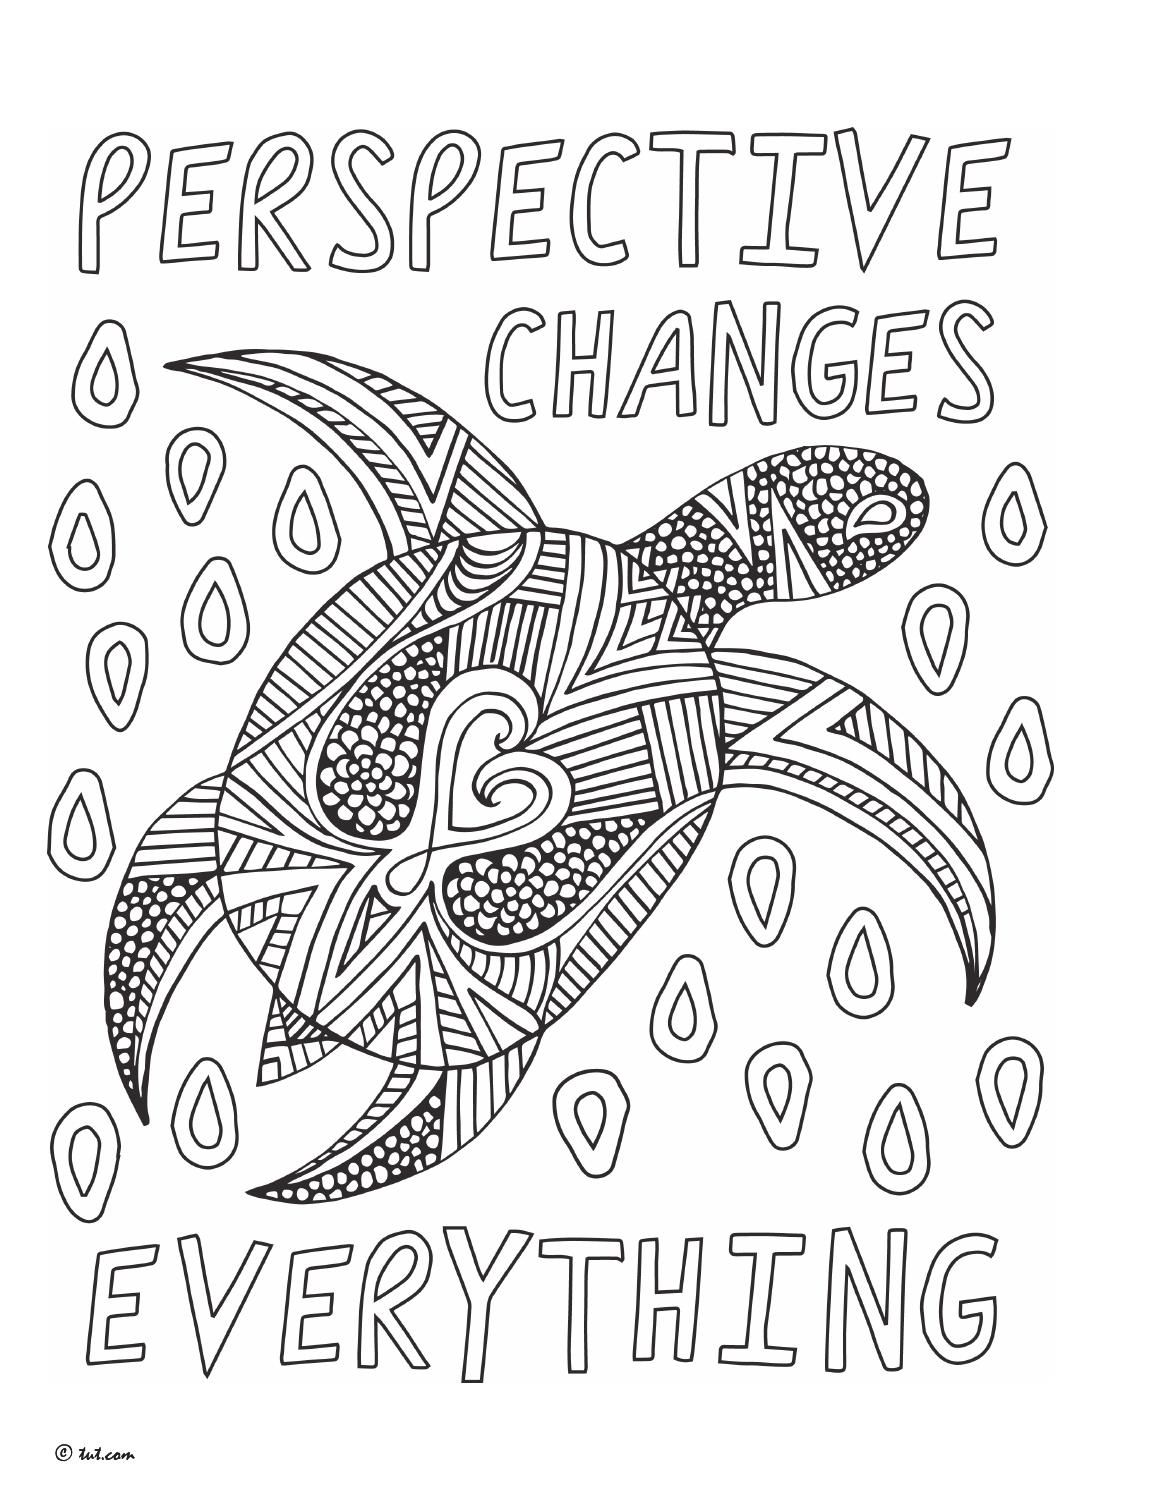 Perspective Changes Everything Notes From The Universe Colouring Book By Mike Dooley Quote